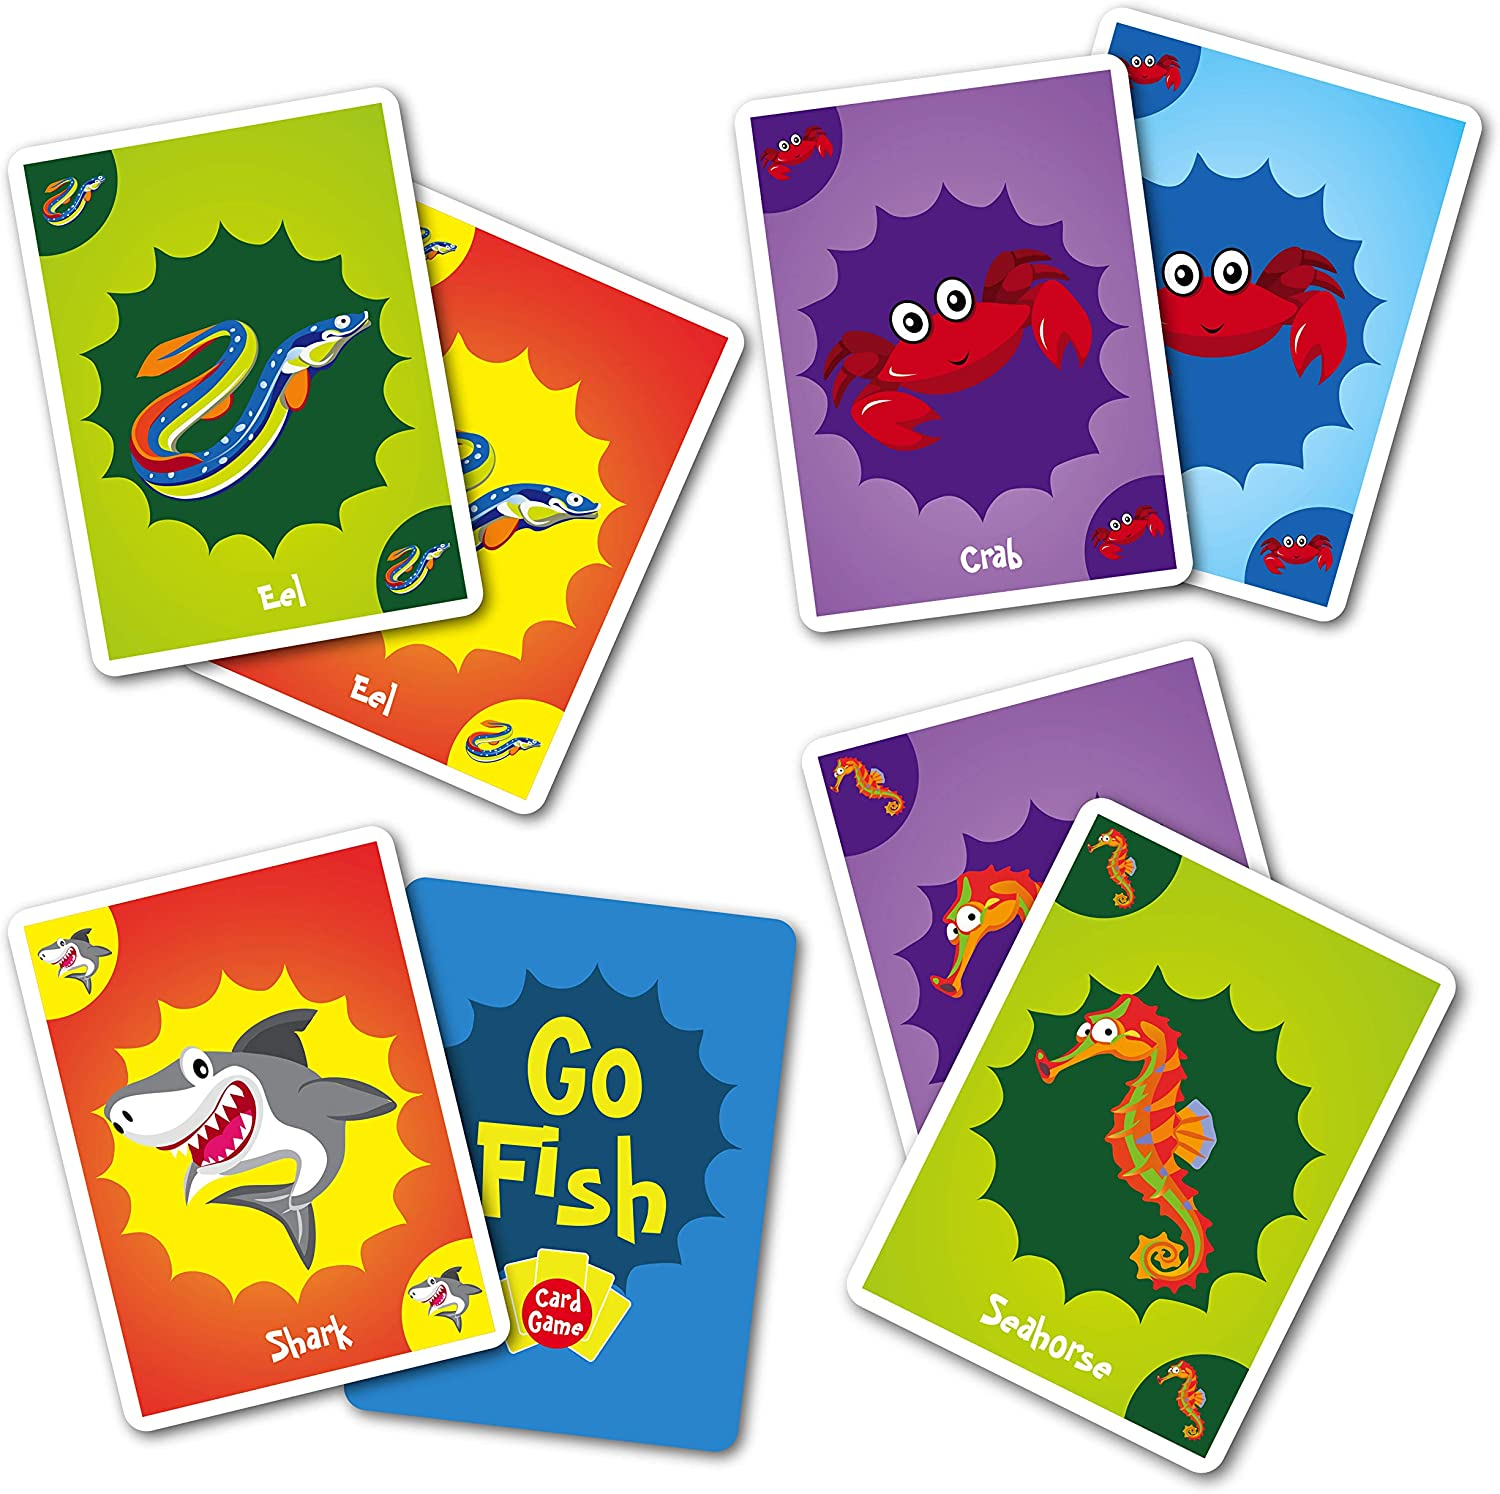 Go fish board game for reading fluency